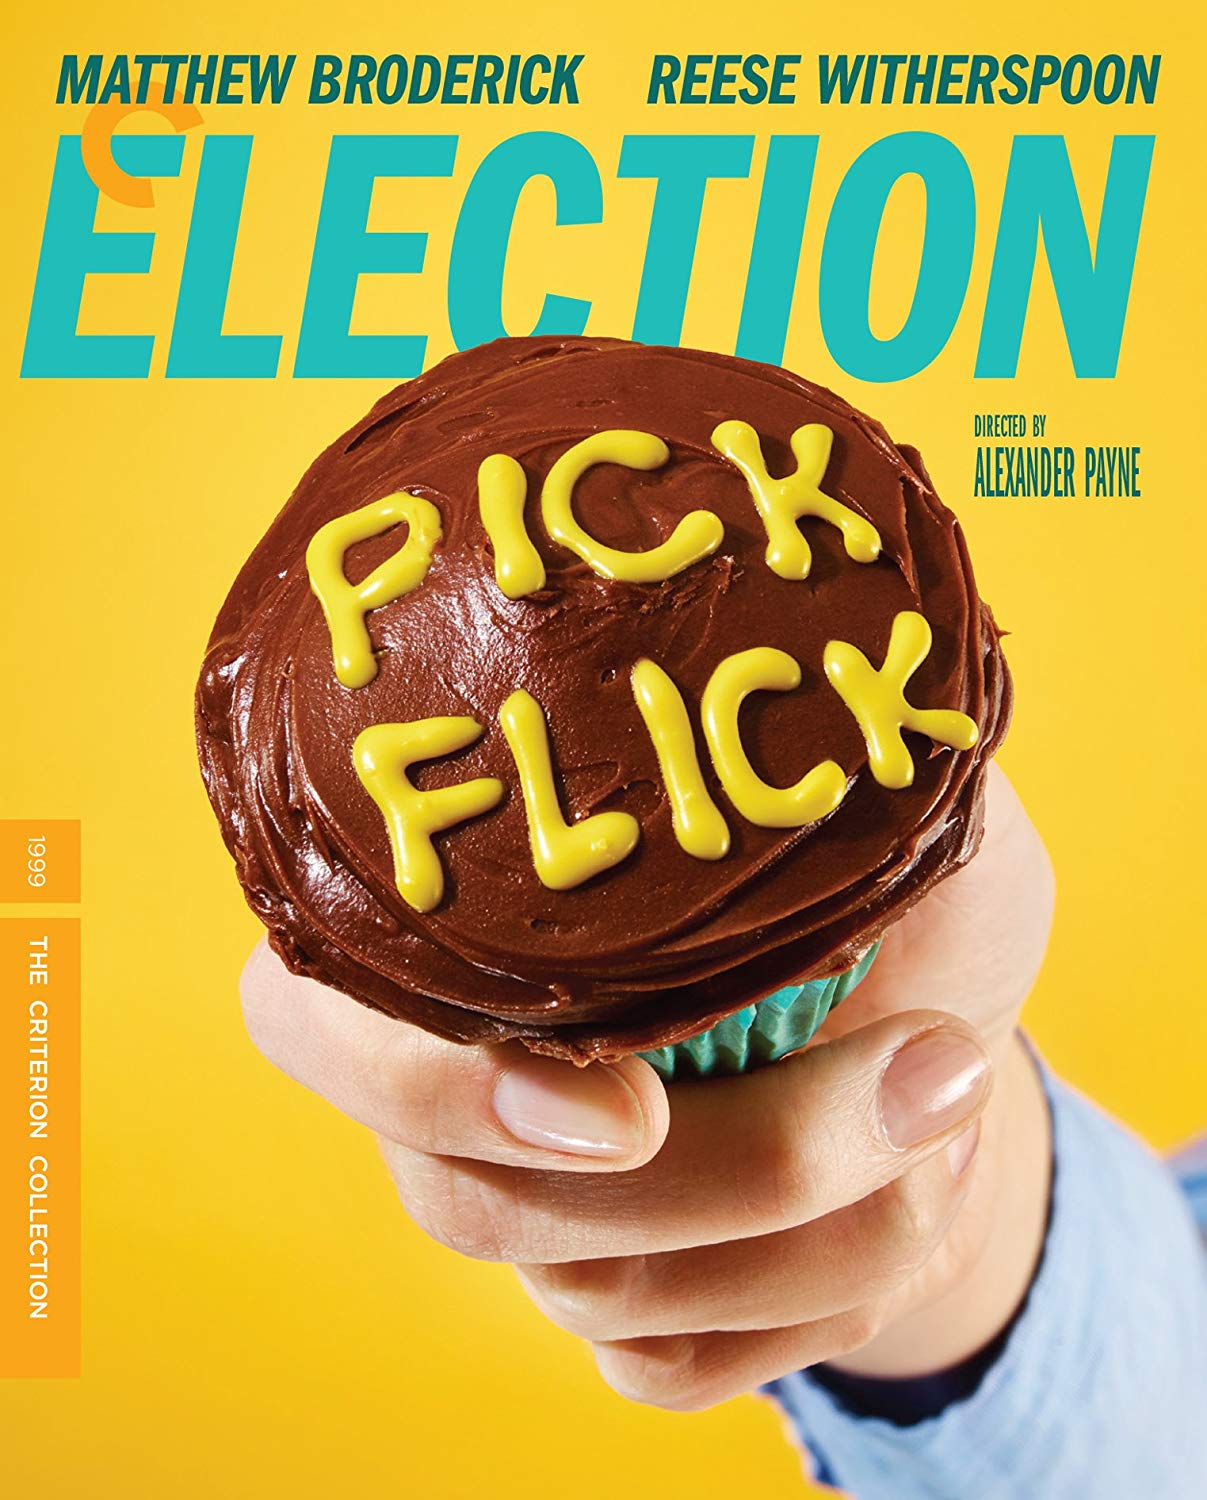 Blu-ray Review: Alexander Payne's Election on the Criterion